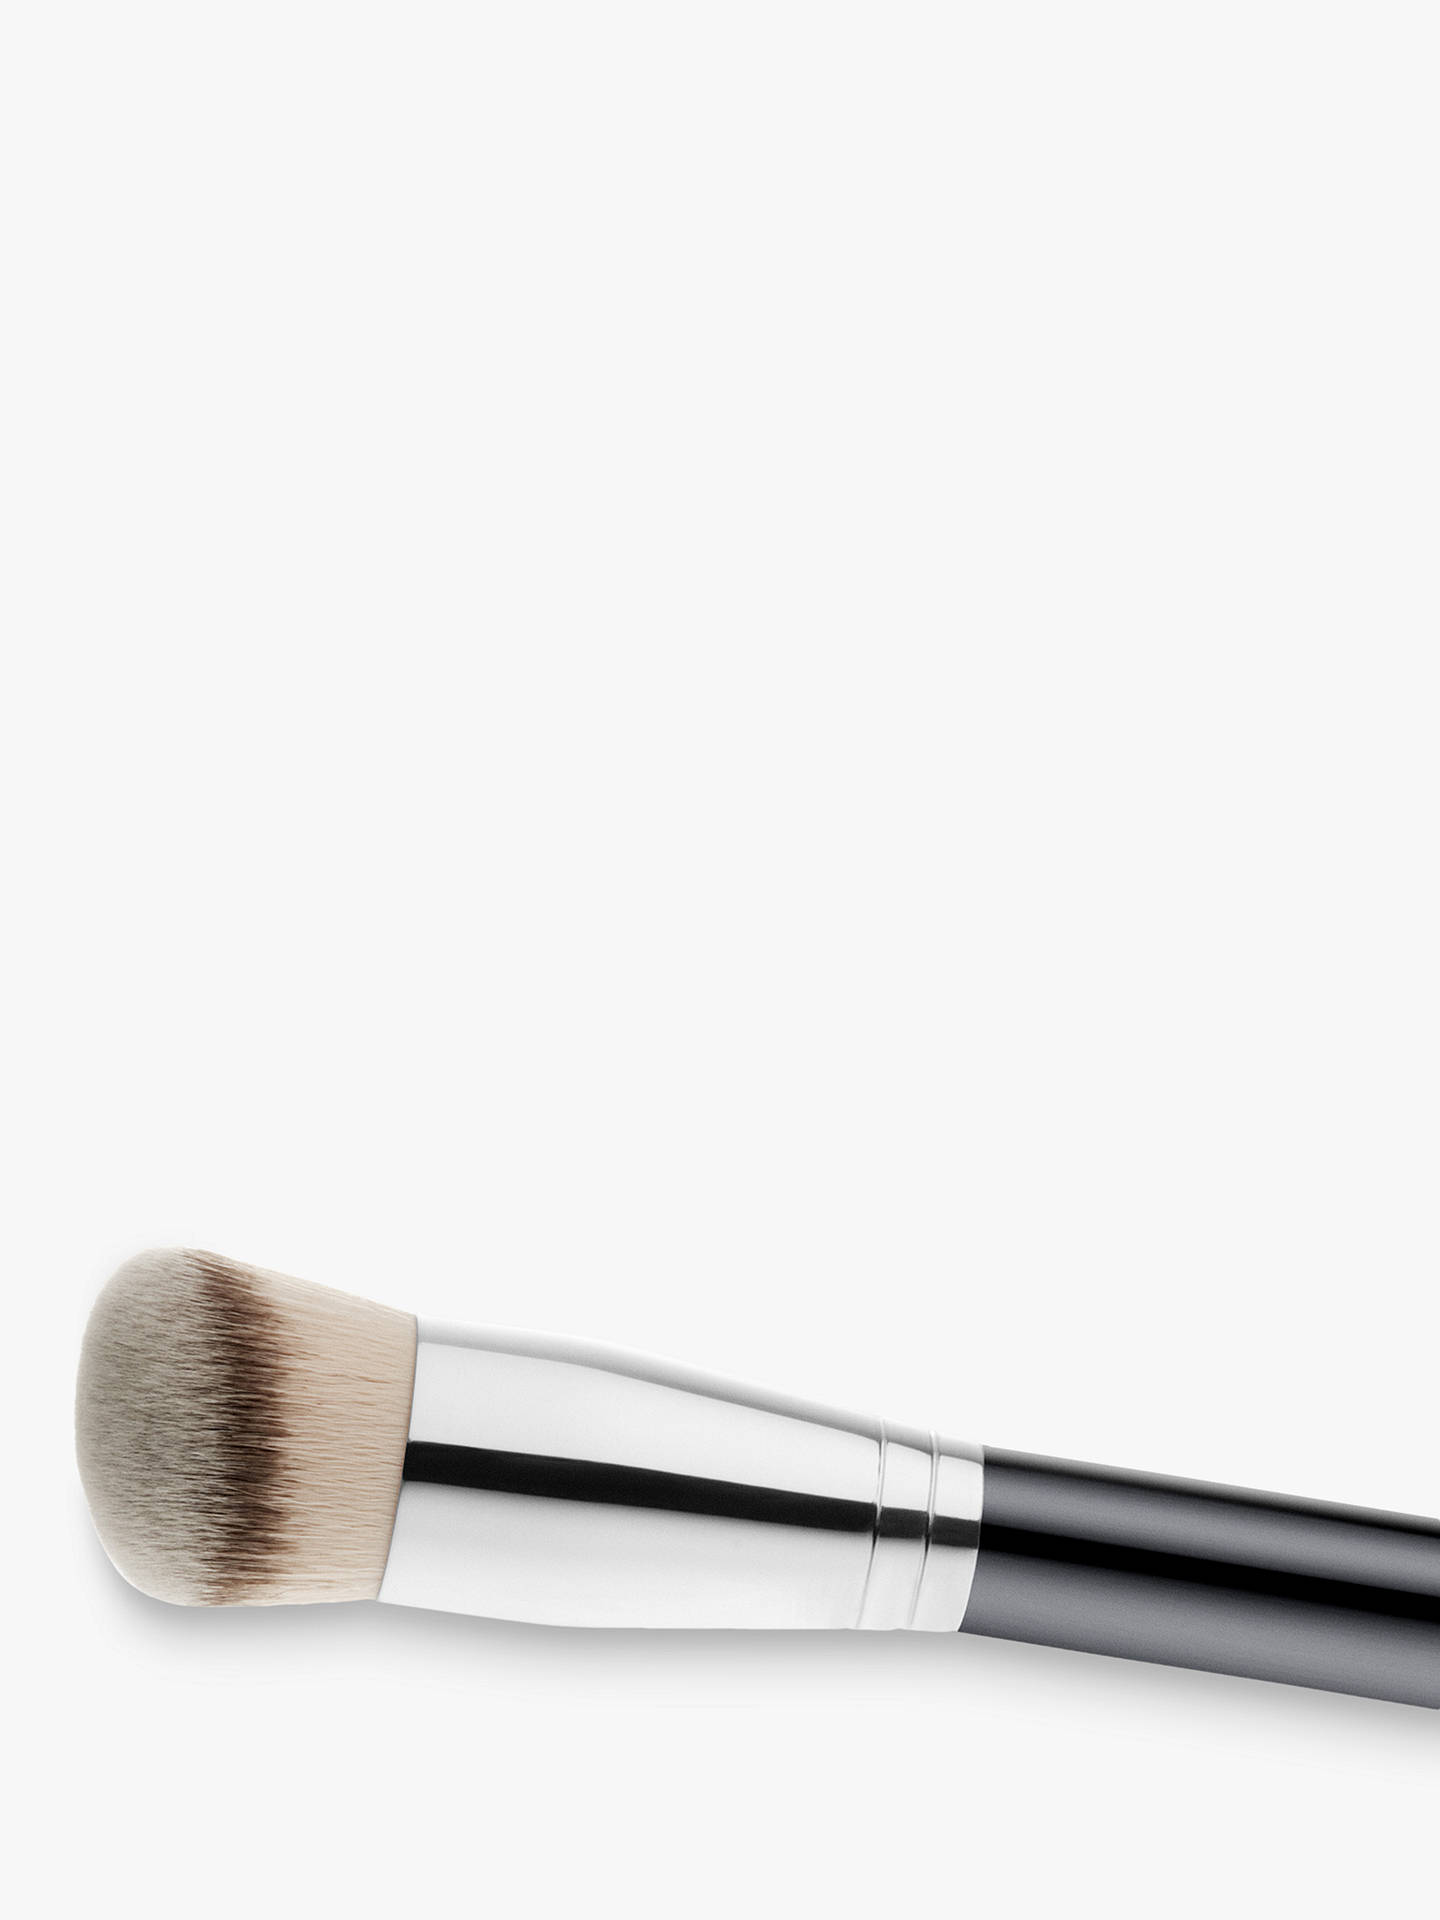 BuyMAC 170 Synthetic Rounded Brush Online at johnlewis.com